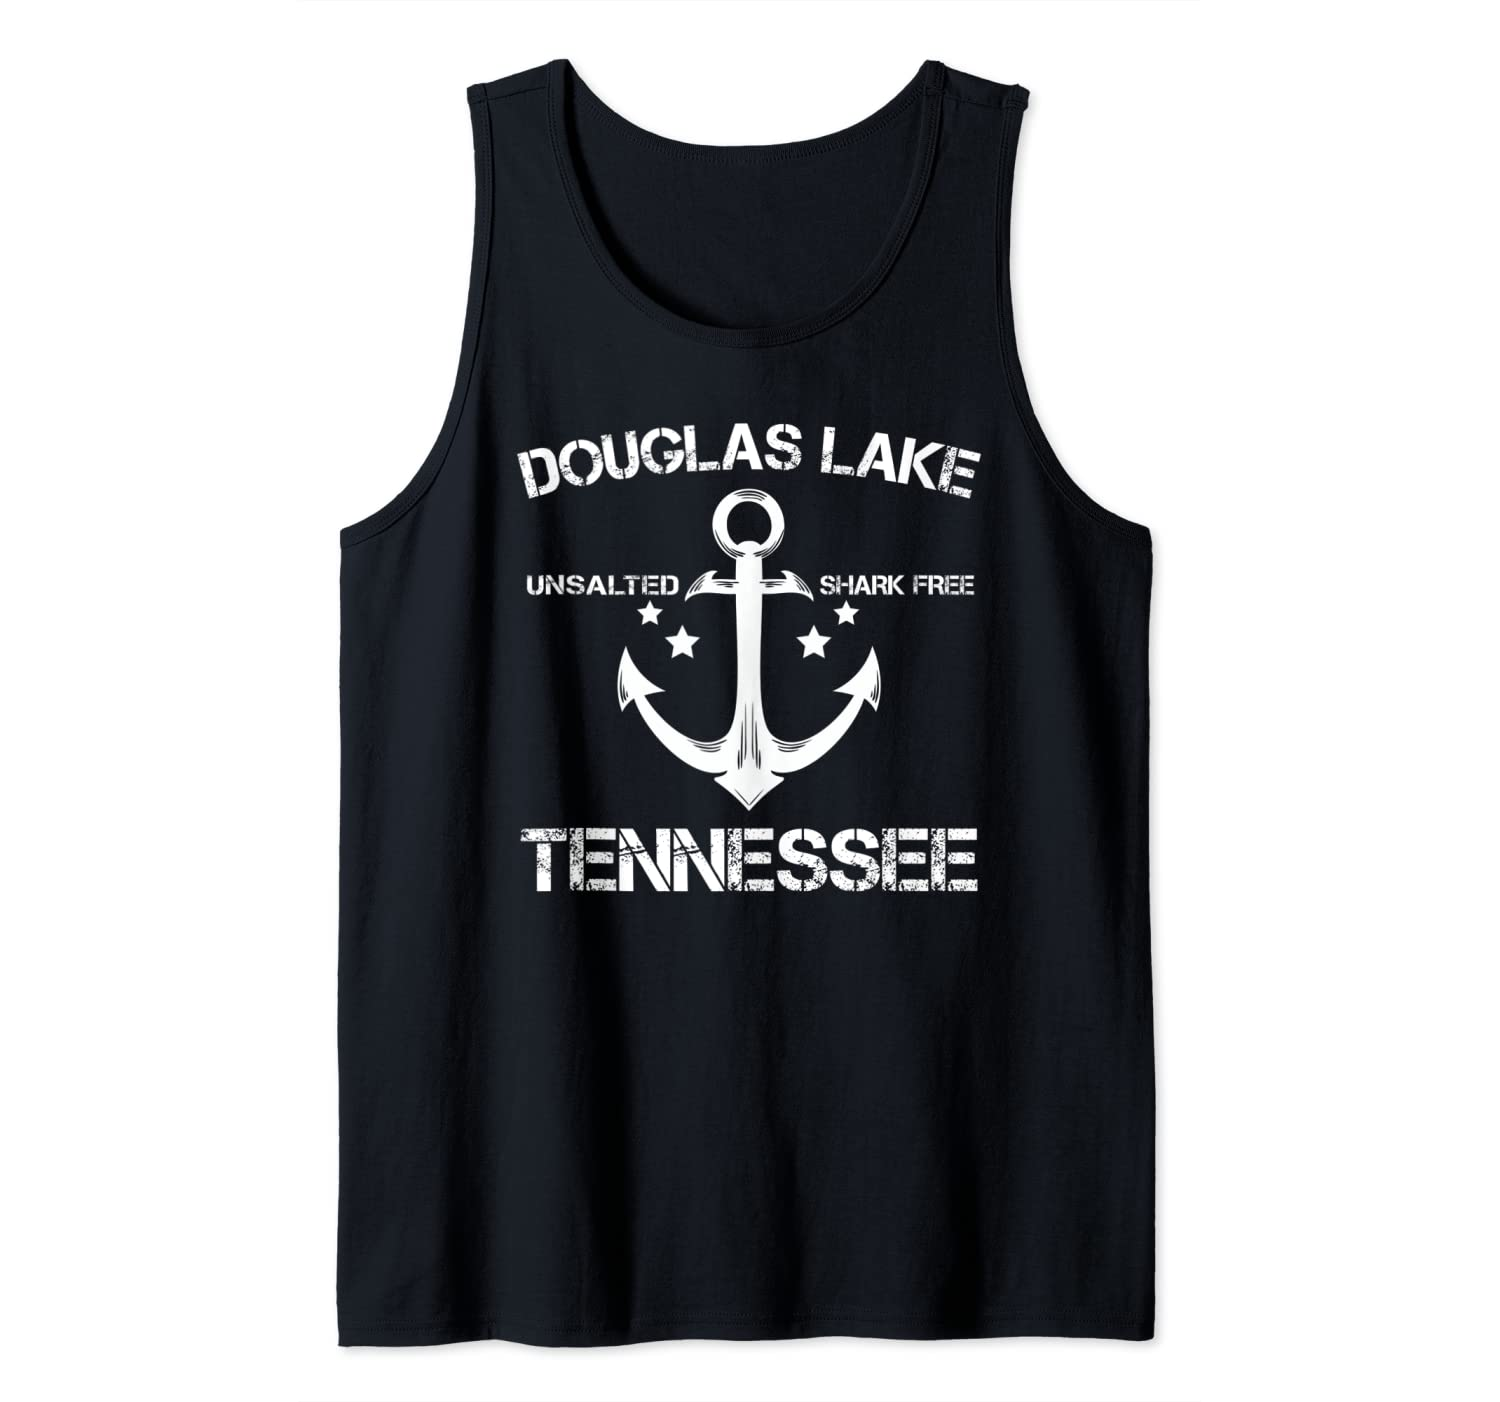 DOUGLAS LAKE TENNESSEE Funny Fishing Camping Summer Gift Tank Top